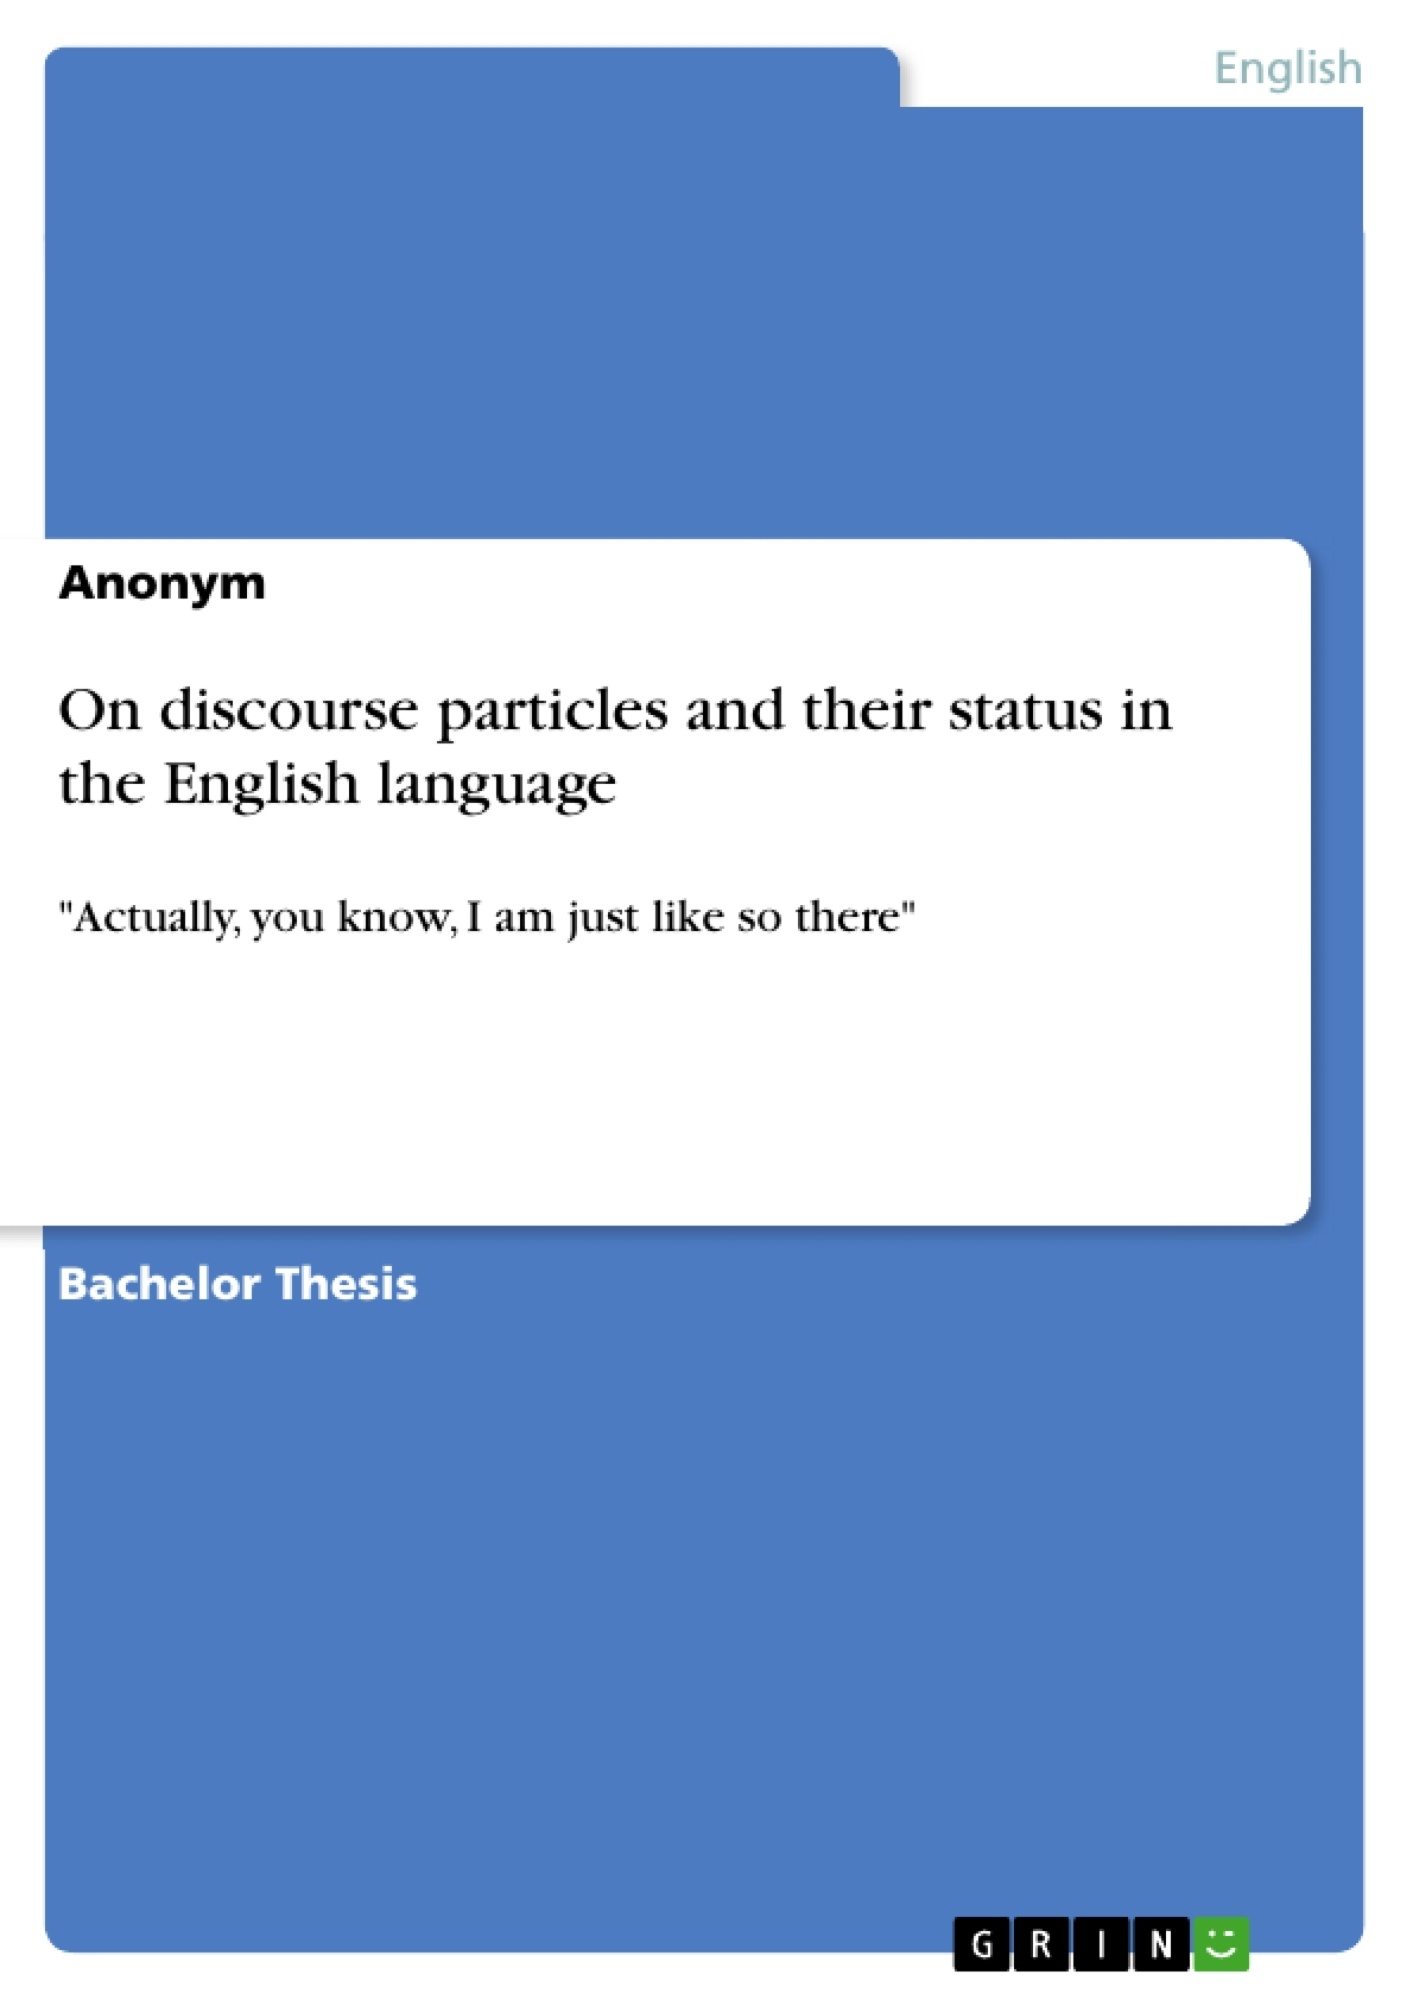 Title: On discourse particles and their status in the English language